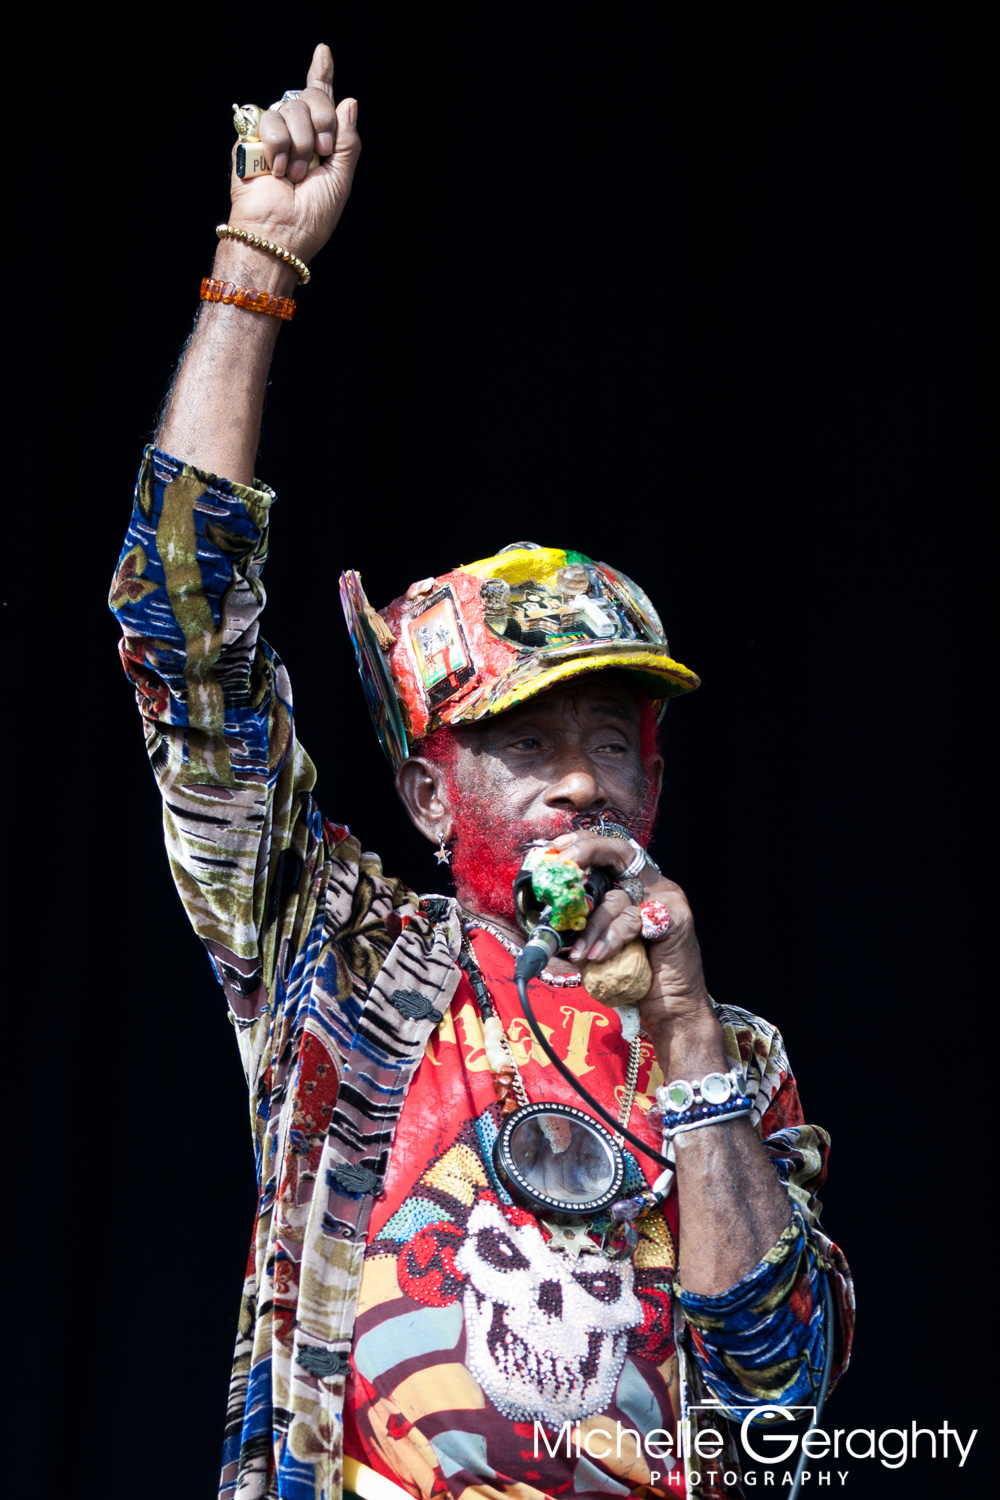 Lee Scratch Perry at Electric Picnic